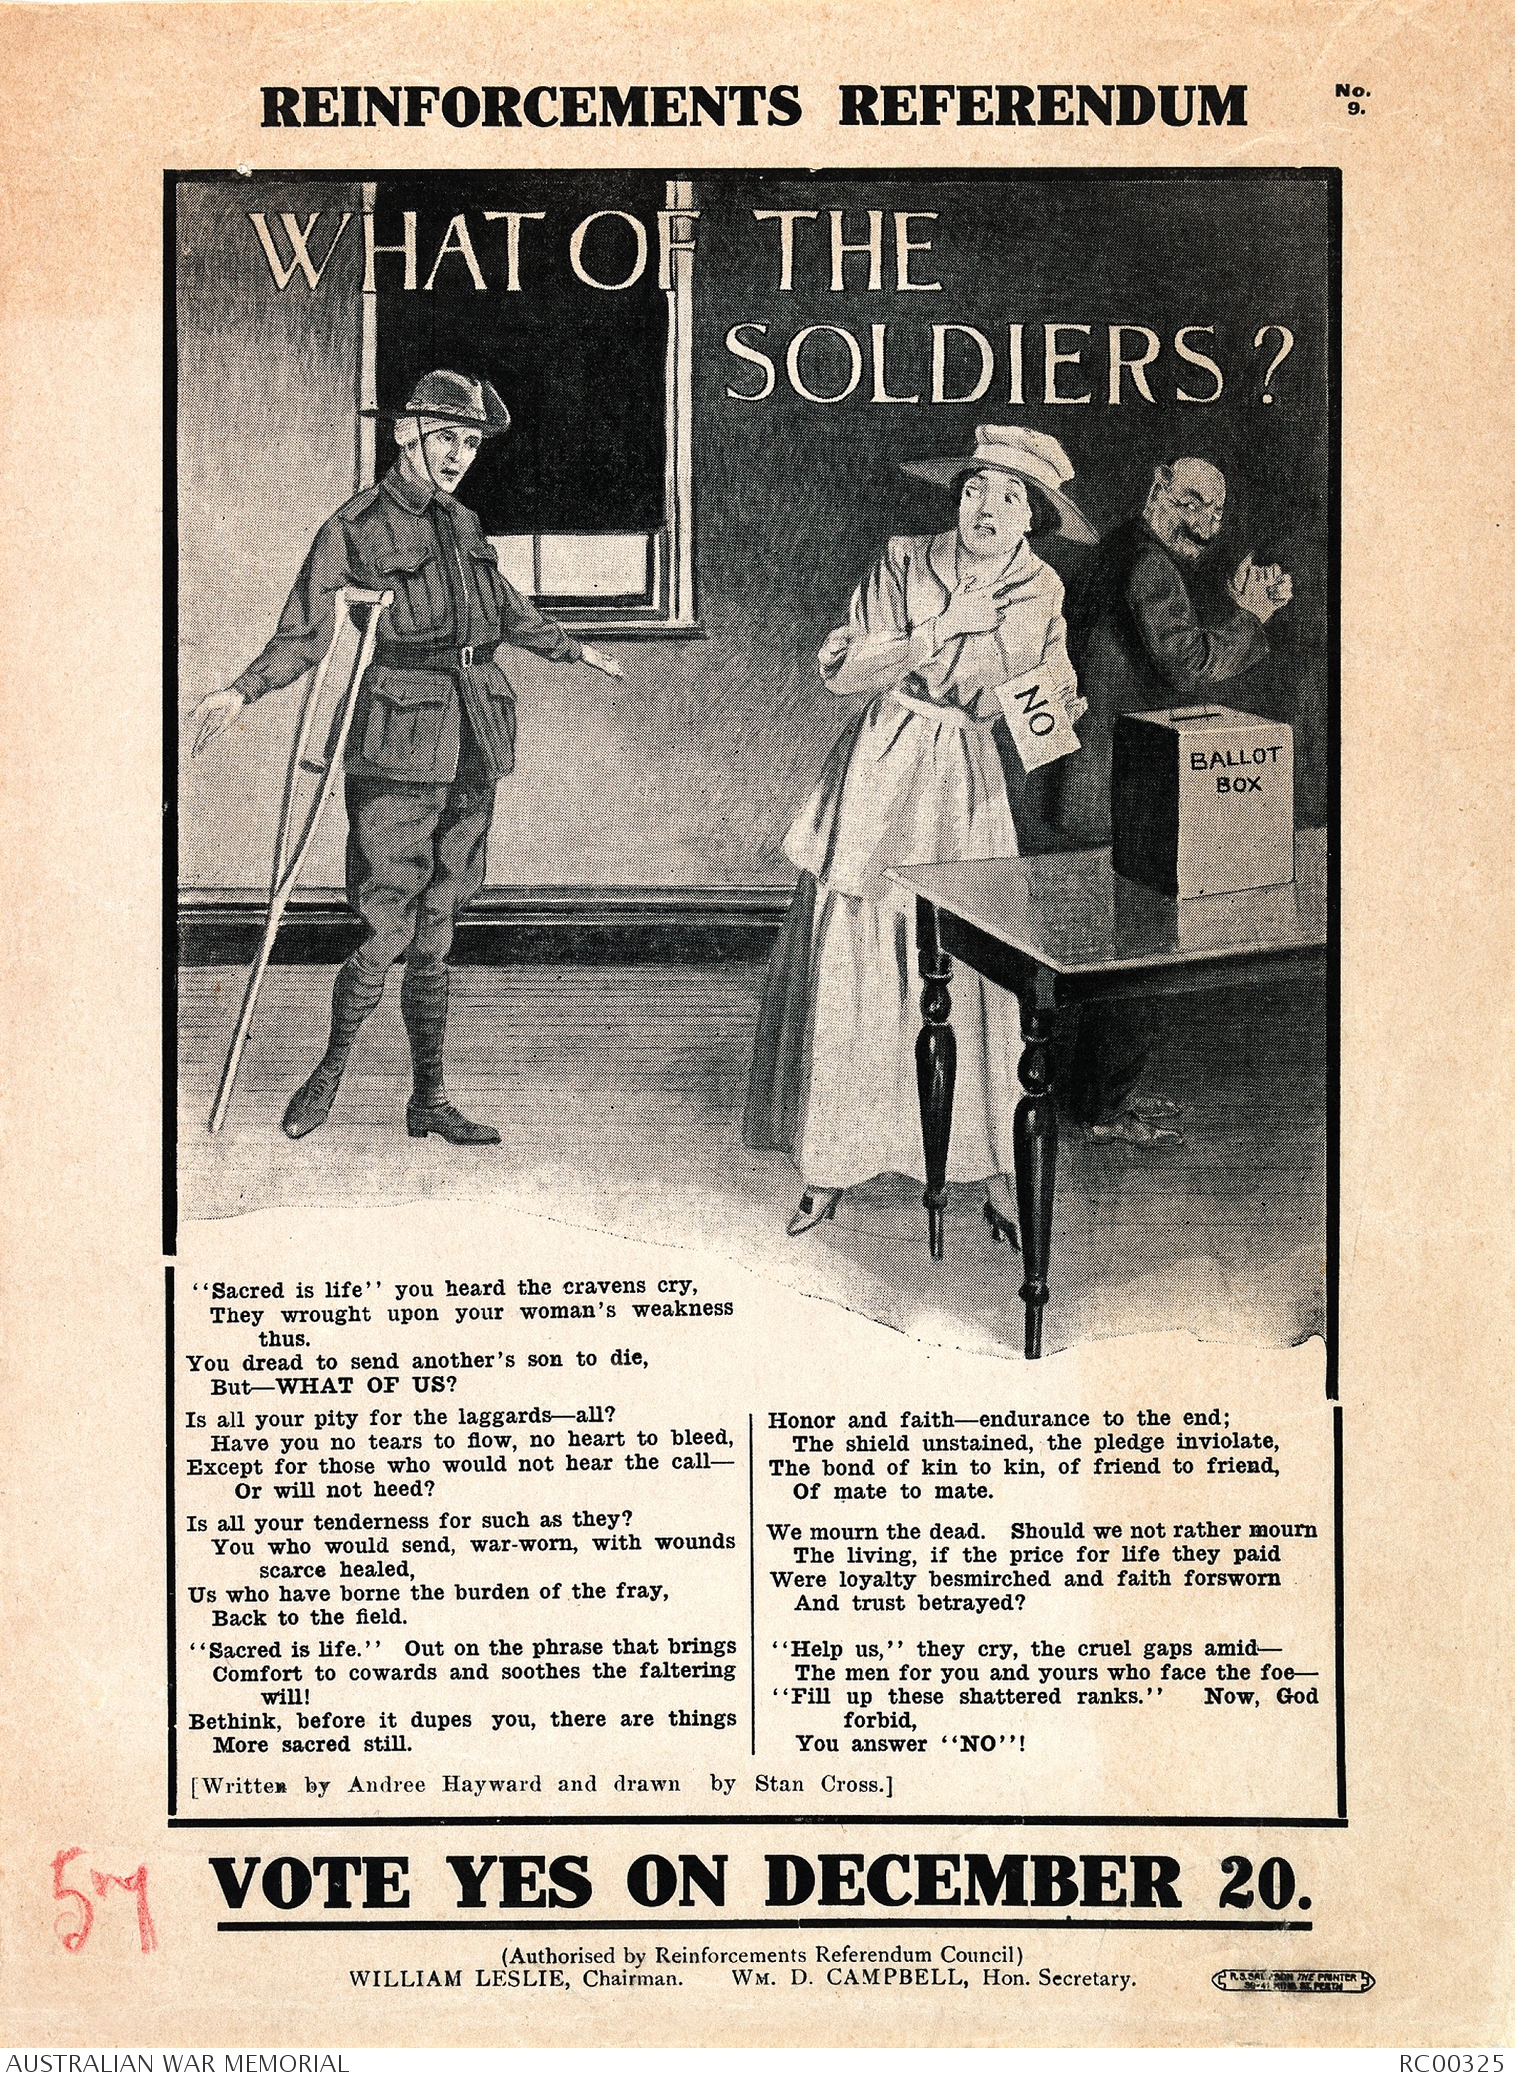 u0026quot reinforcements referendum  what of the soldiers  vote yes